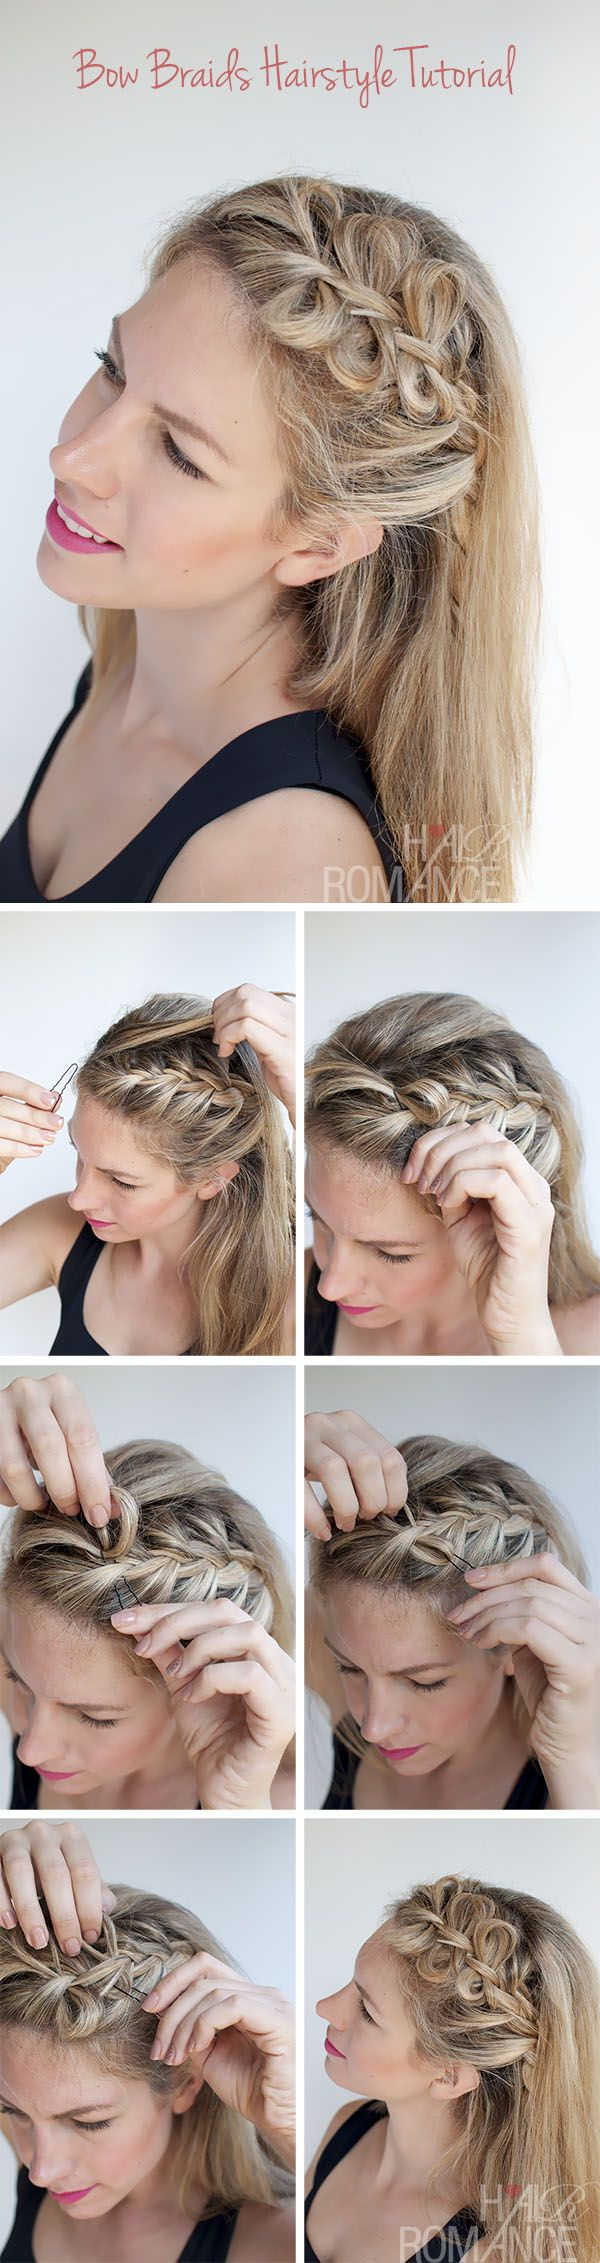 Side Bow Braided Hairstyle.